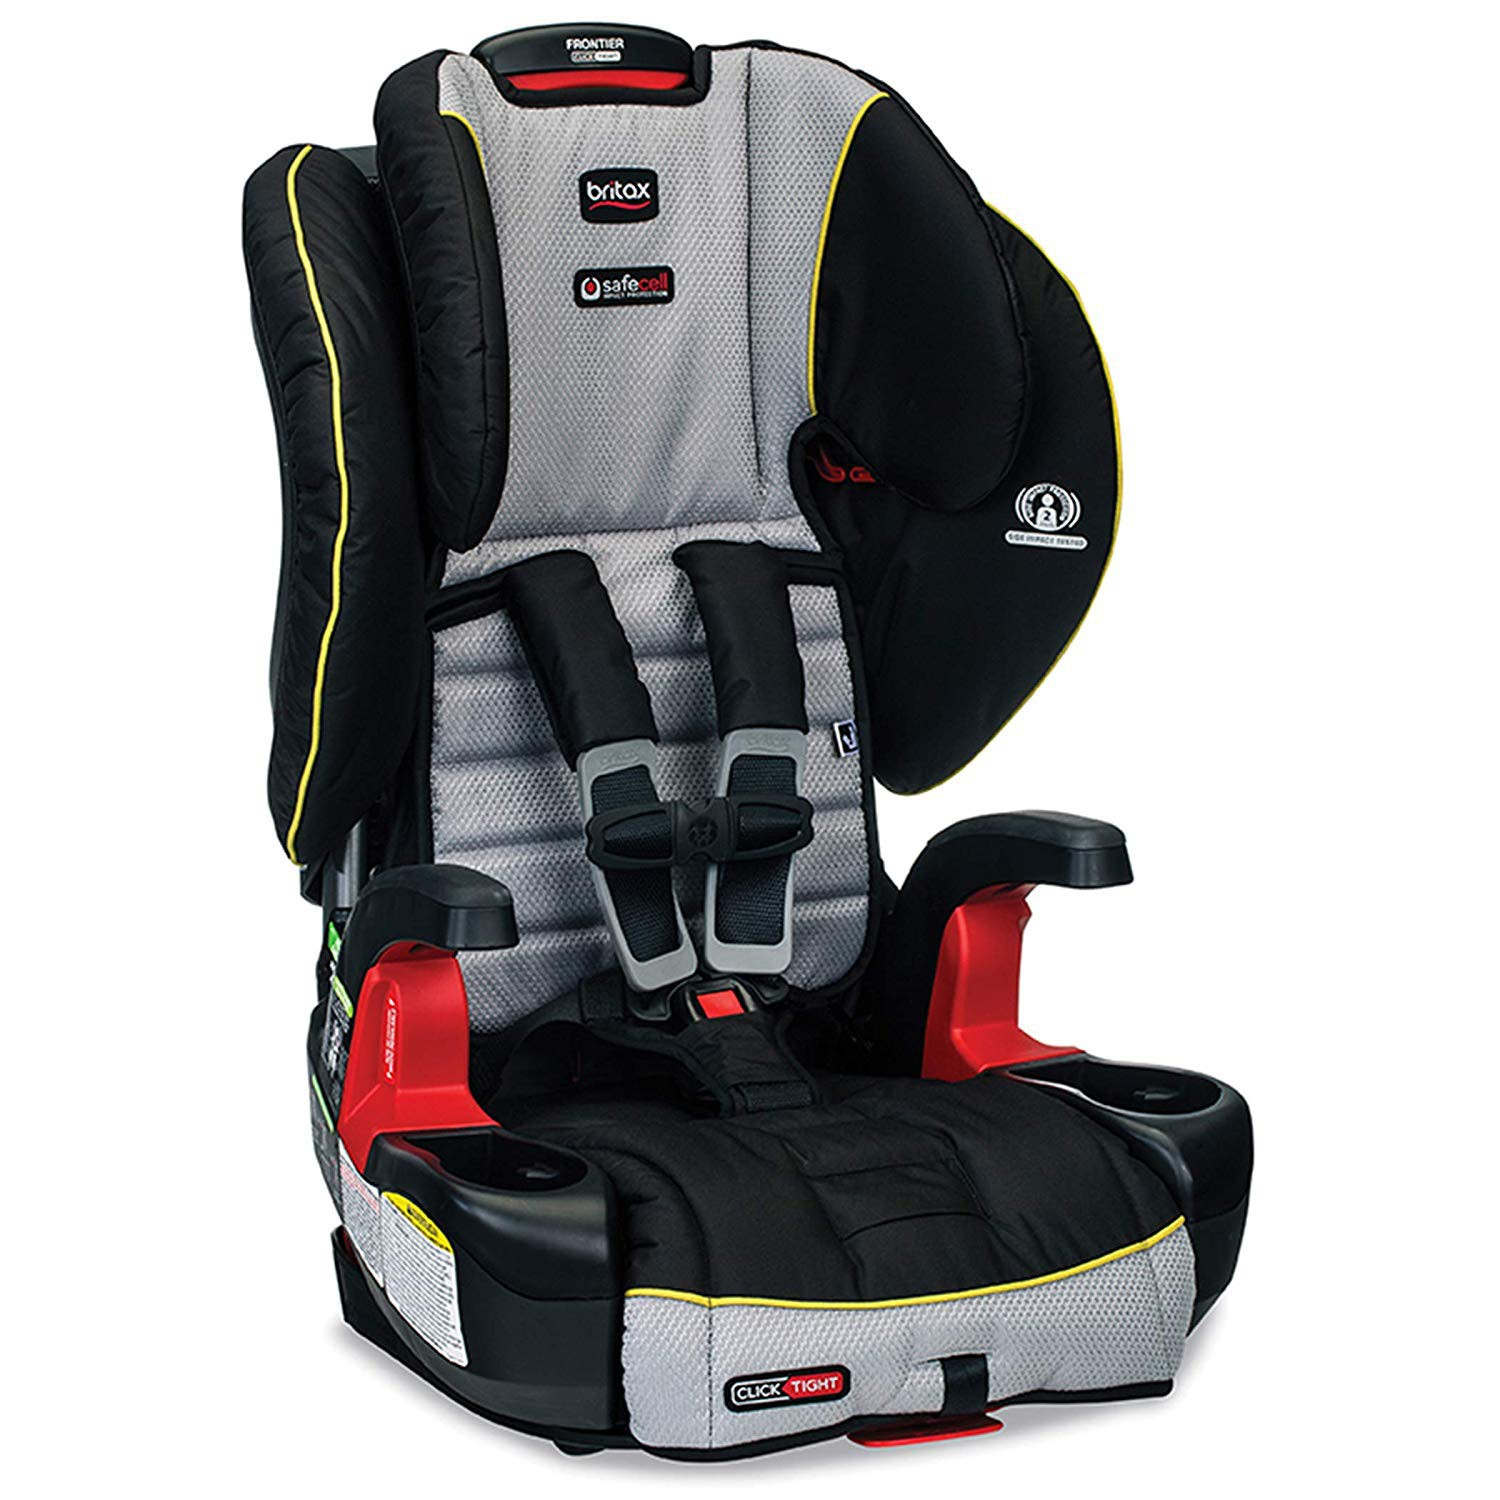 BRITAX Frontier Clicktight - 2 colours available